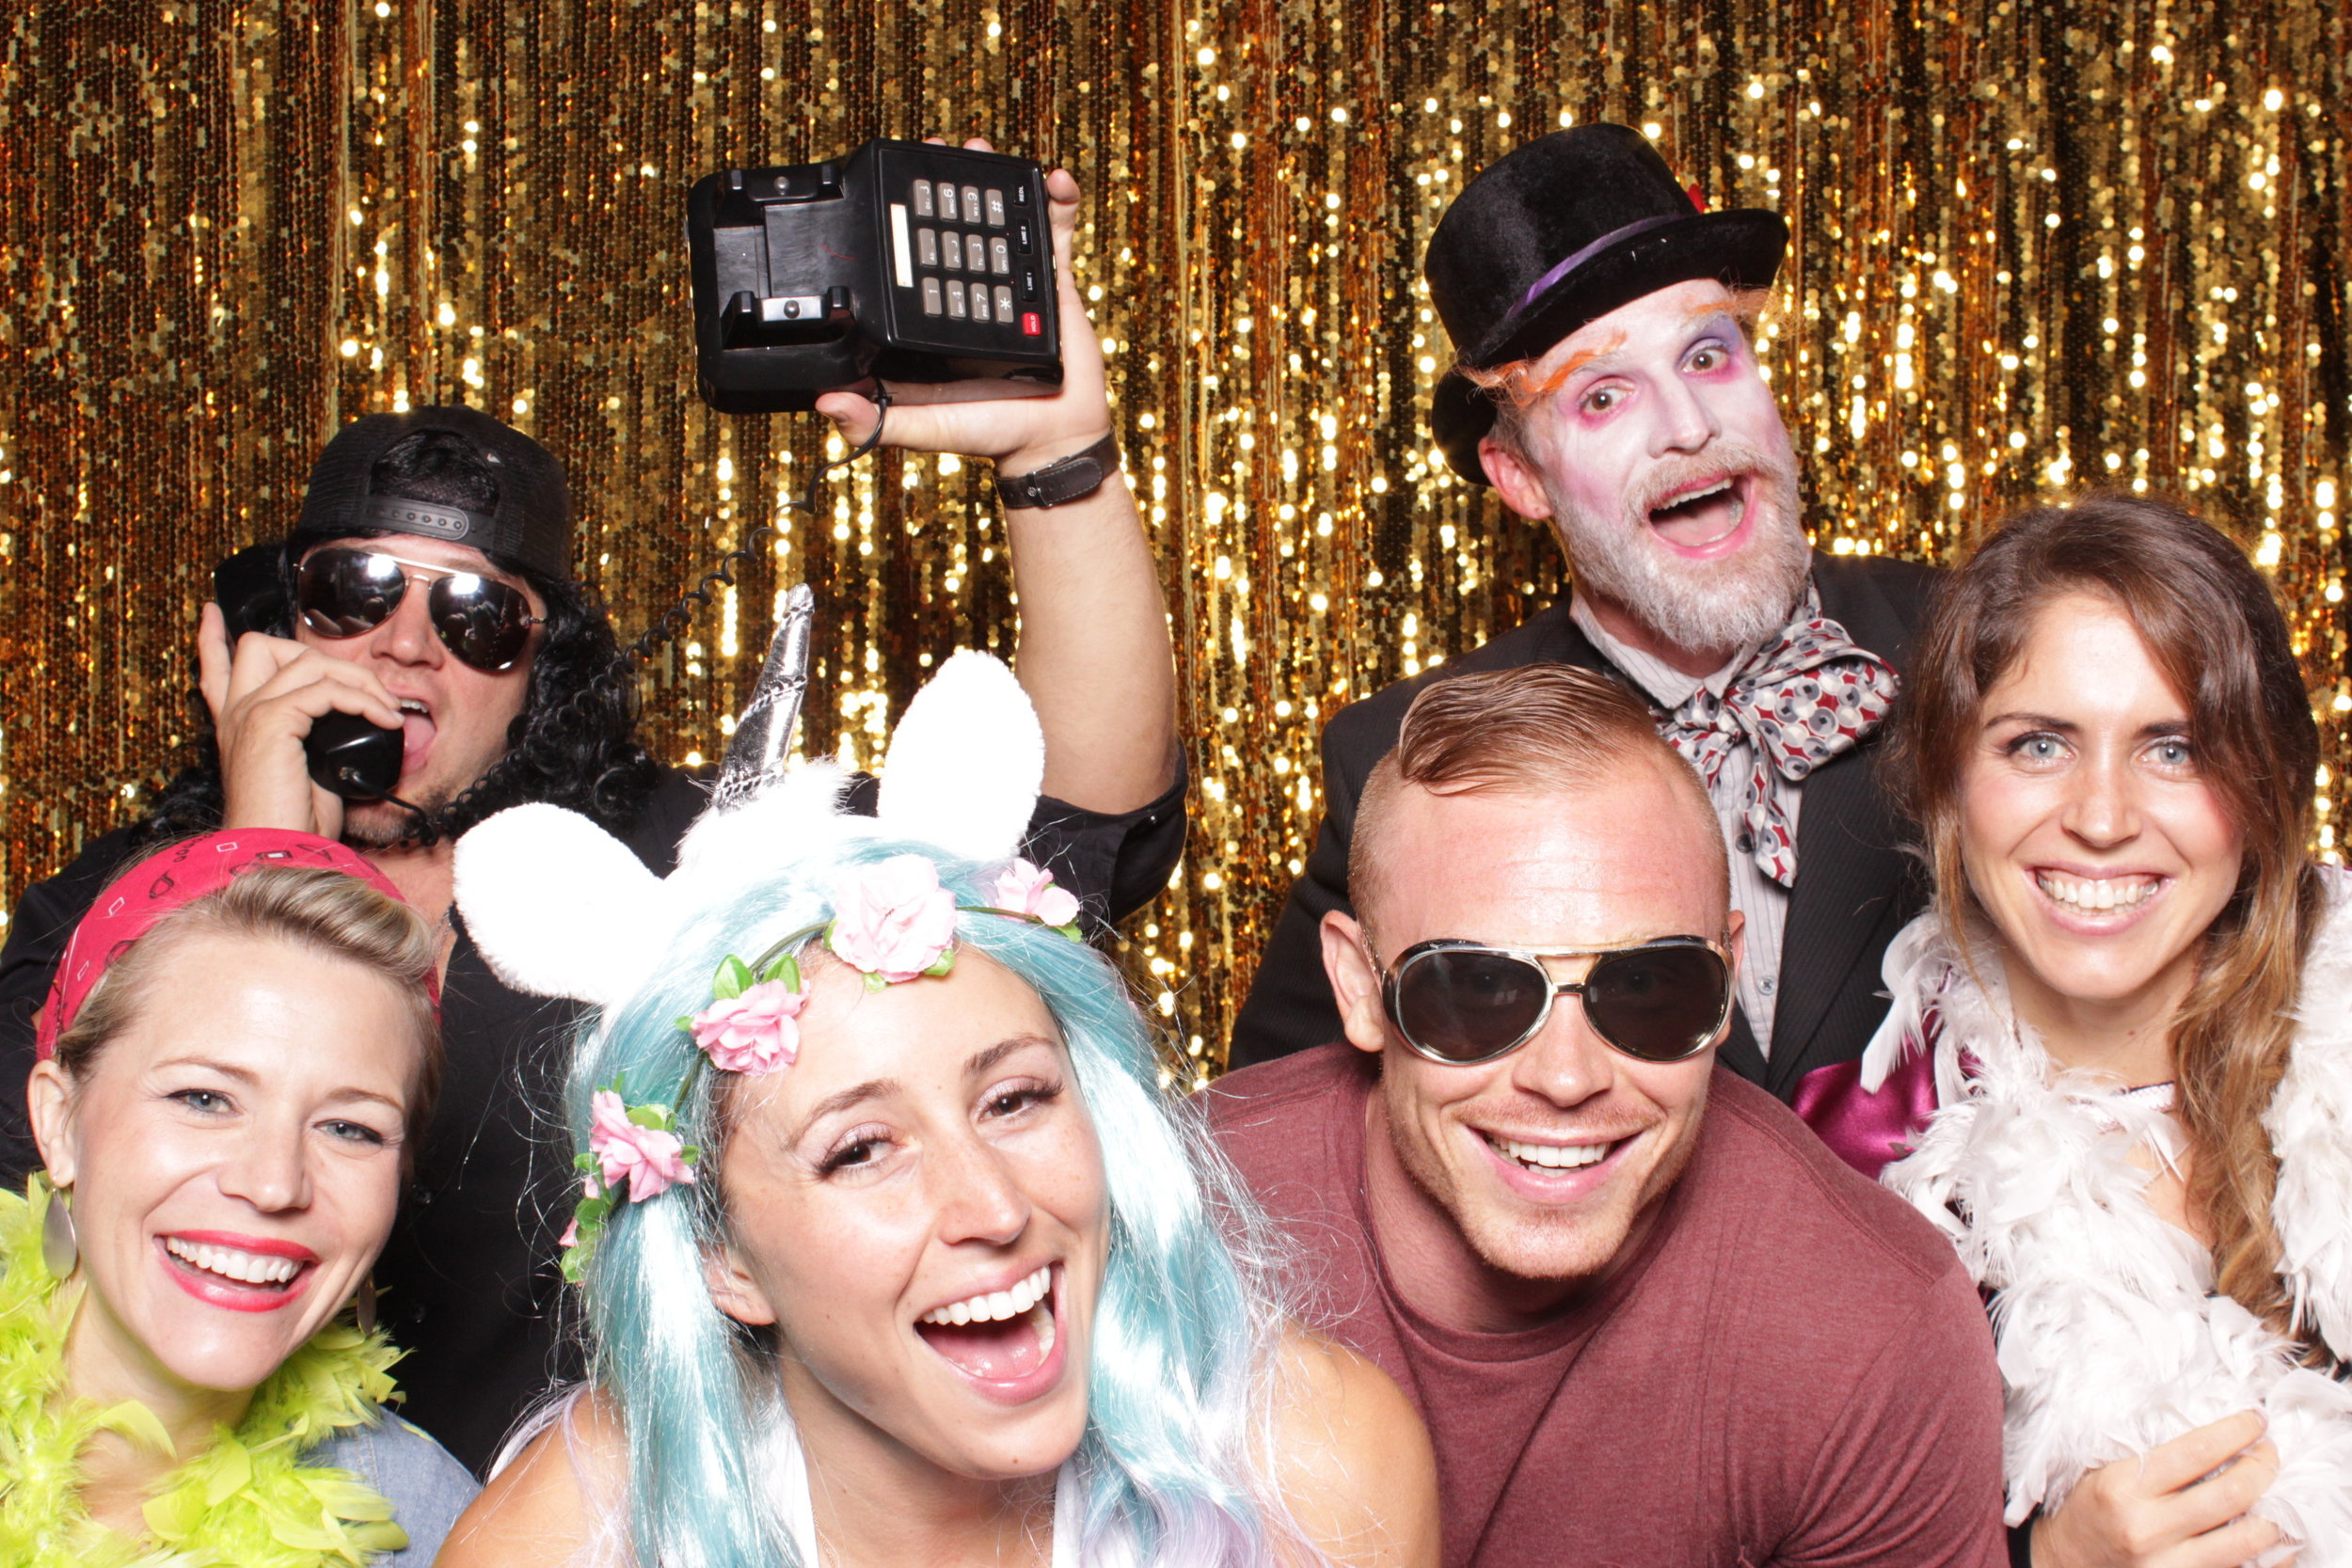 Chico-photo-booth-rental-quality